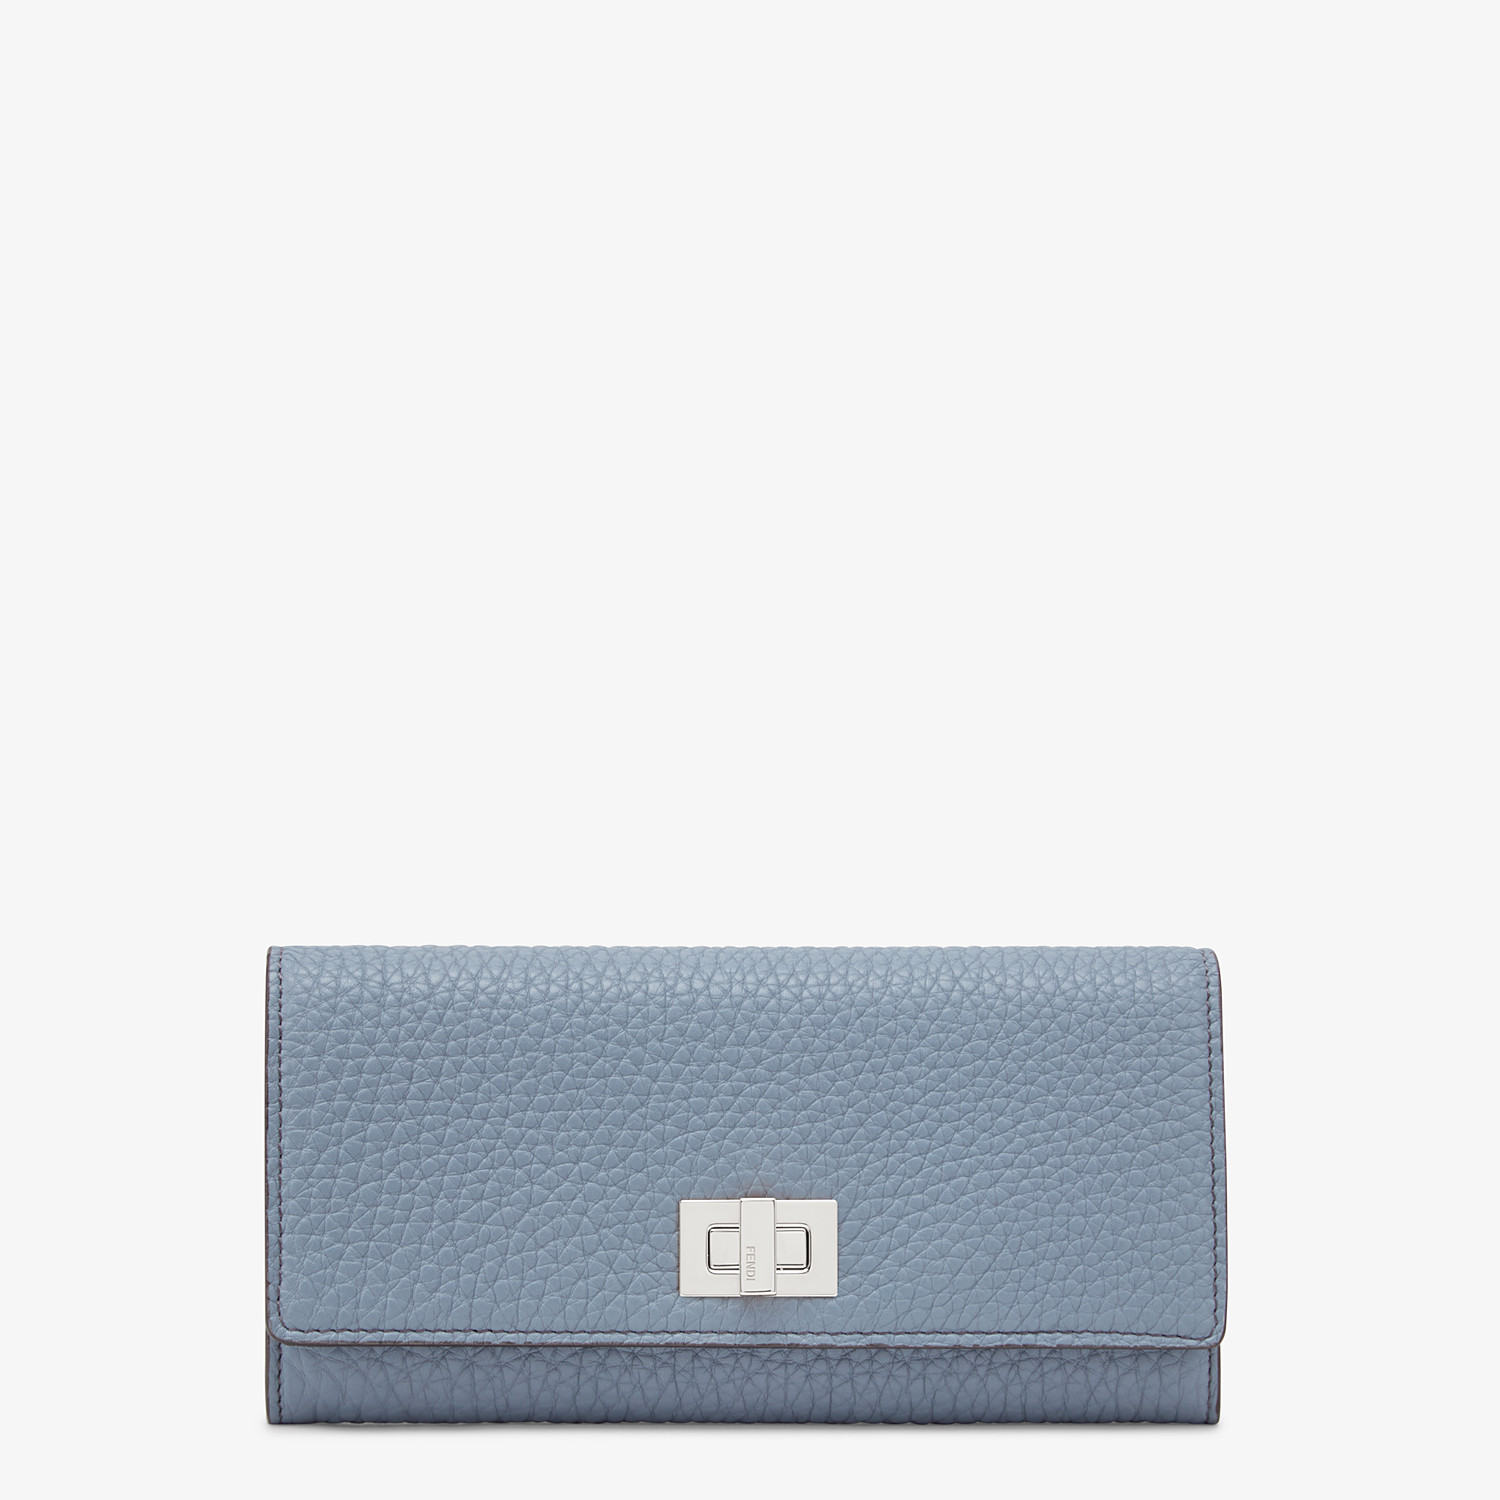 FENDI CONTINENTAL - Light blue leather wallet - view 1 detail